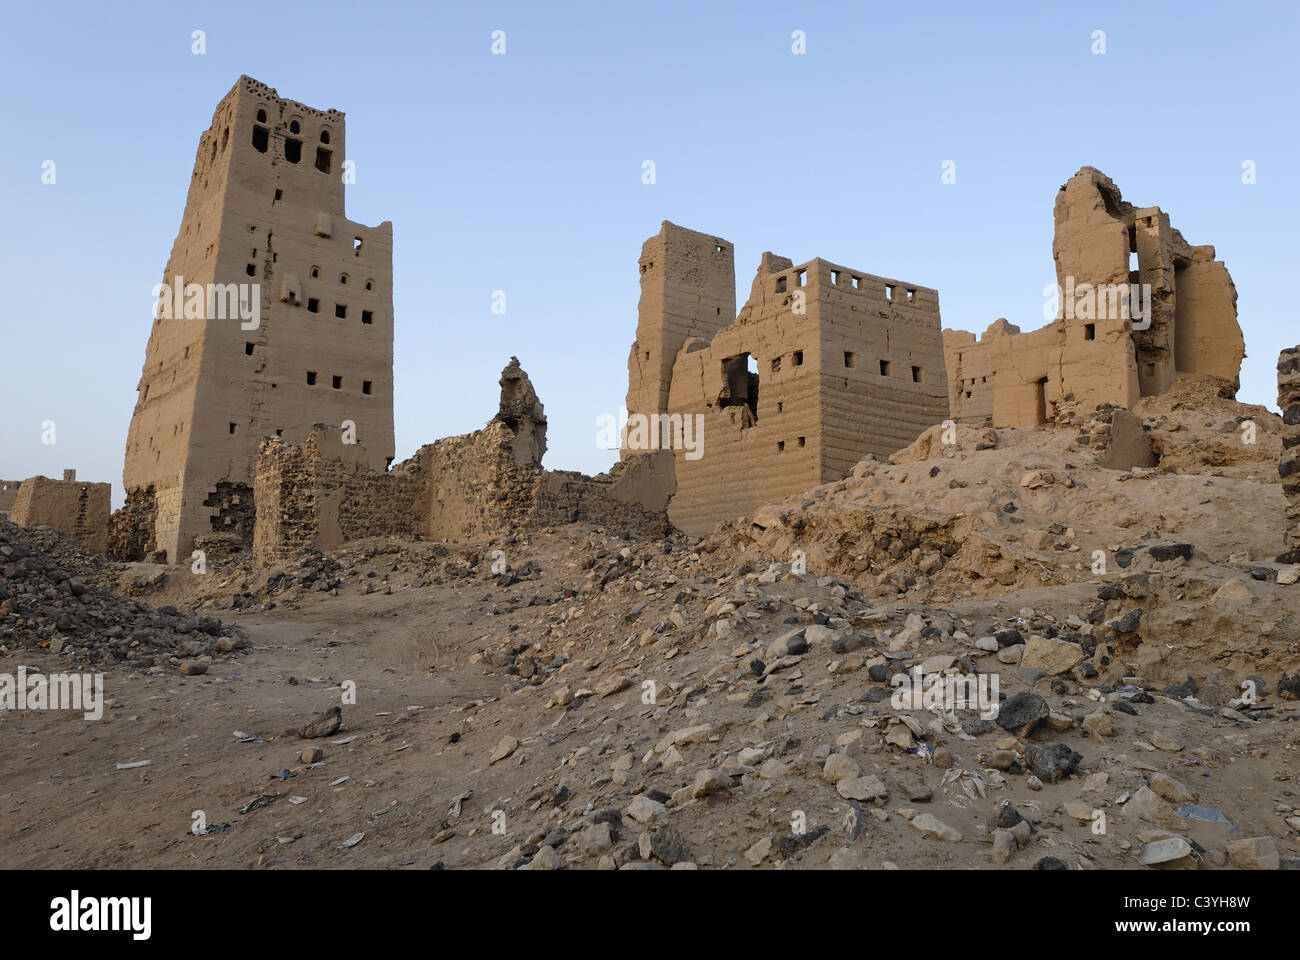 Old town, City, Marib, Yemen, Arabia, Middle East, Abandoned, Tower houses, Houses, Architecture, Ruins, Ruin - Stock Image